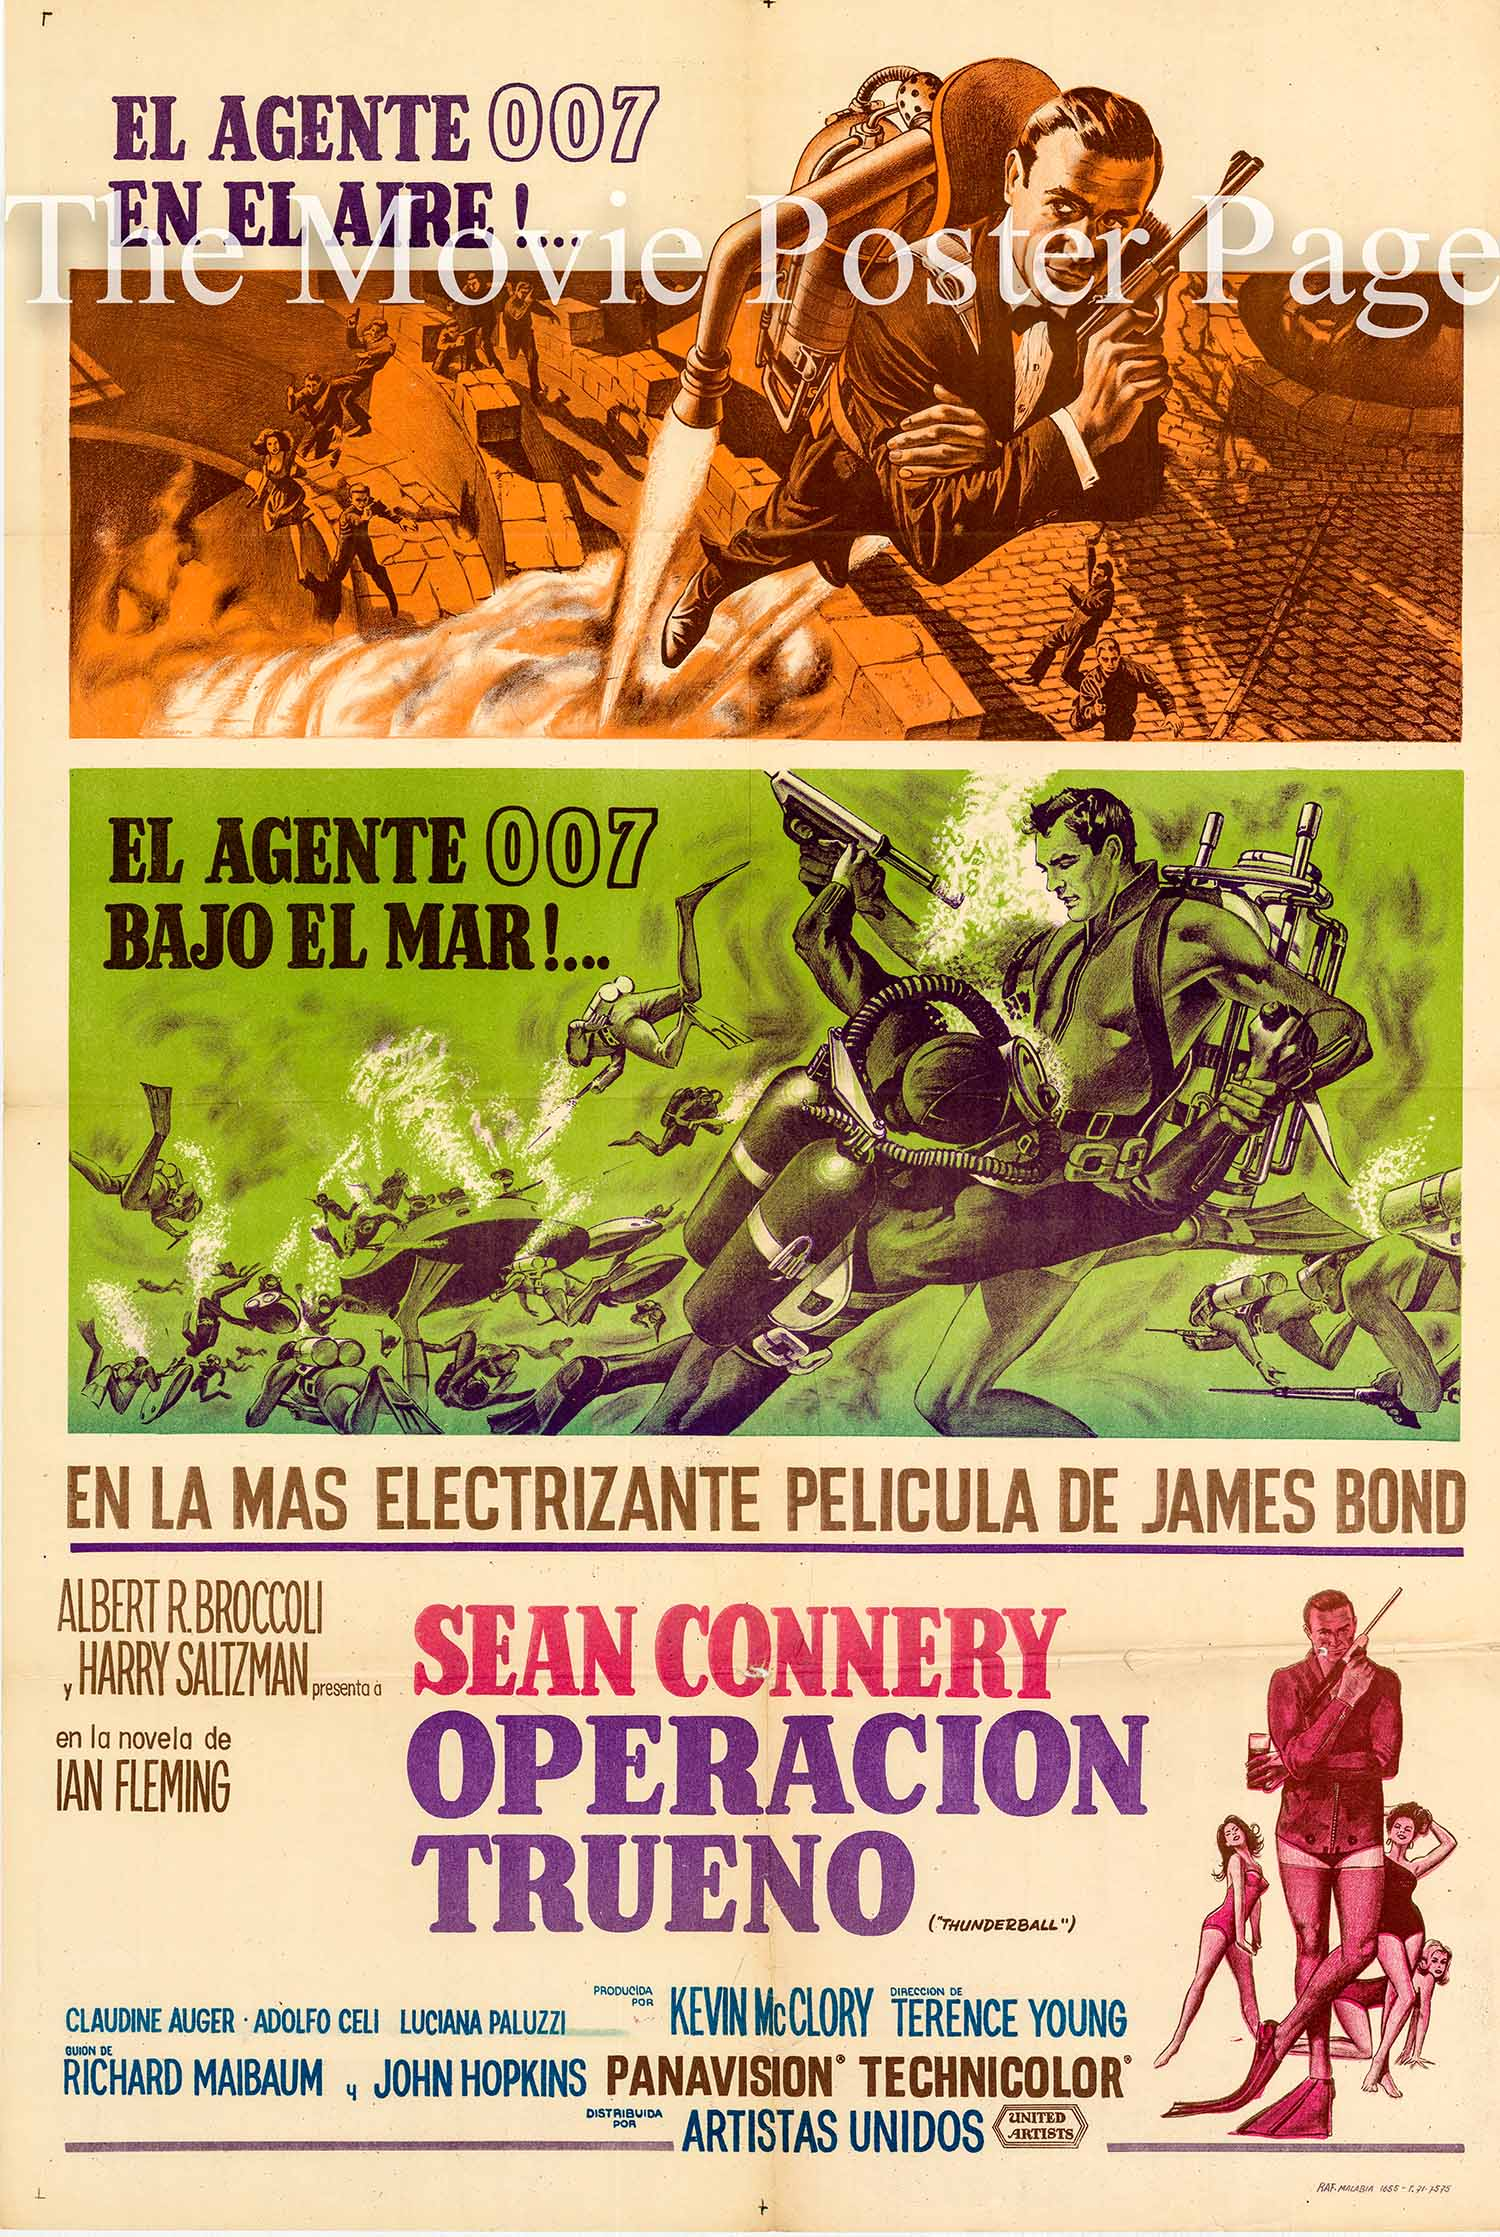 Pictured is an Argentine 29x43 poster made to promote the 1965 Terence Young film Thunderball starring Sean Connery as James Bond.